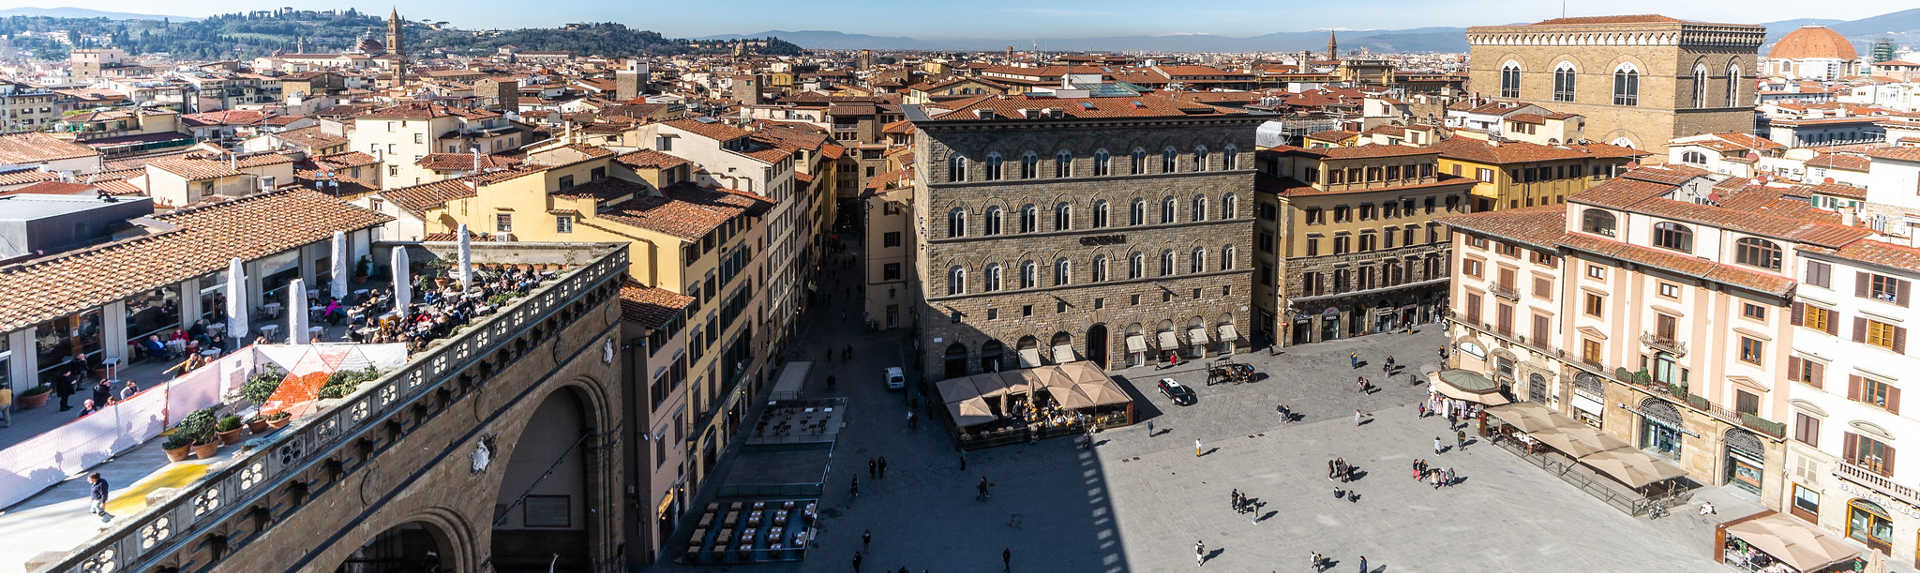 How can I spend 2 days in Florence?